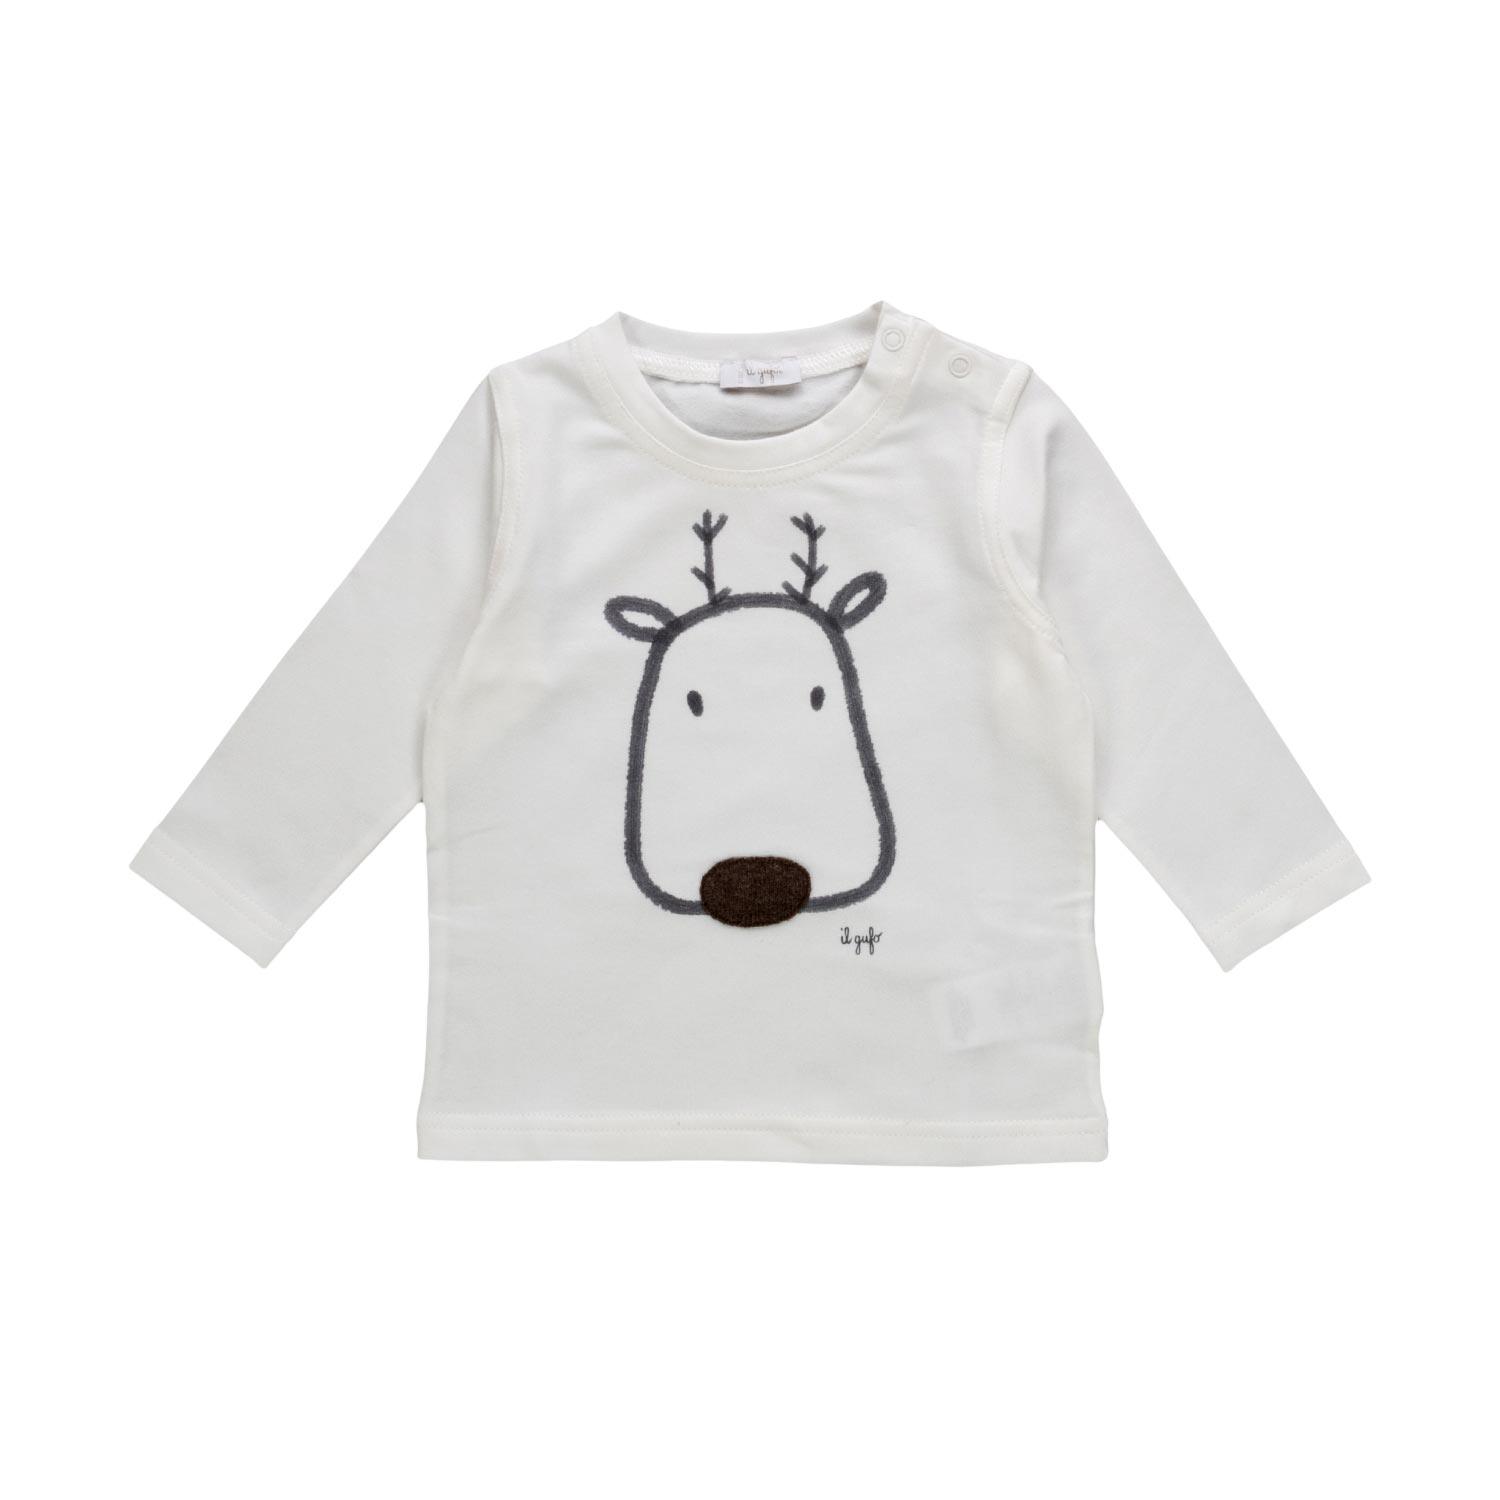 0a5ce2841 Il Gufo - Baby Boy T-Shirt With Reindeer - annameglio.com shop online